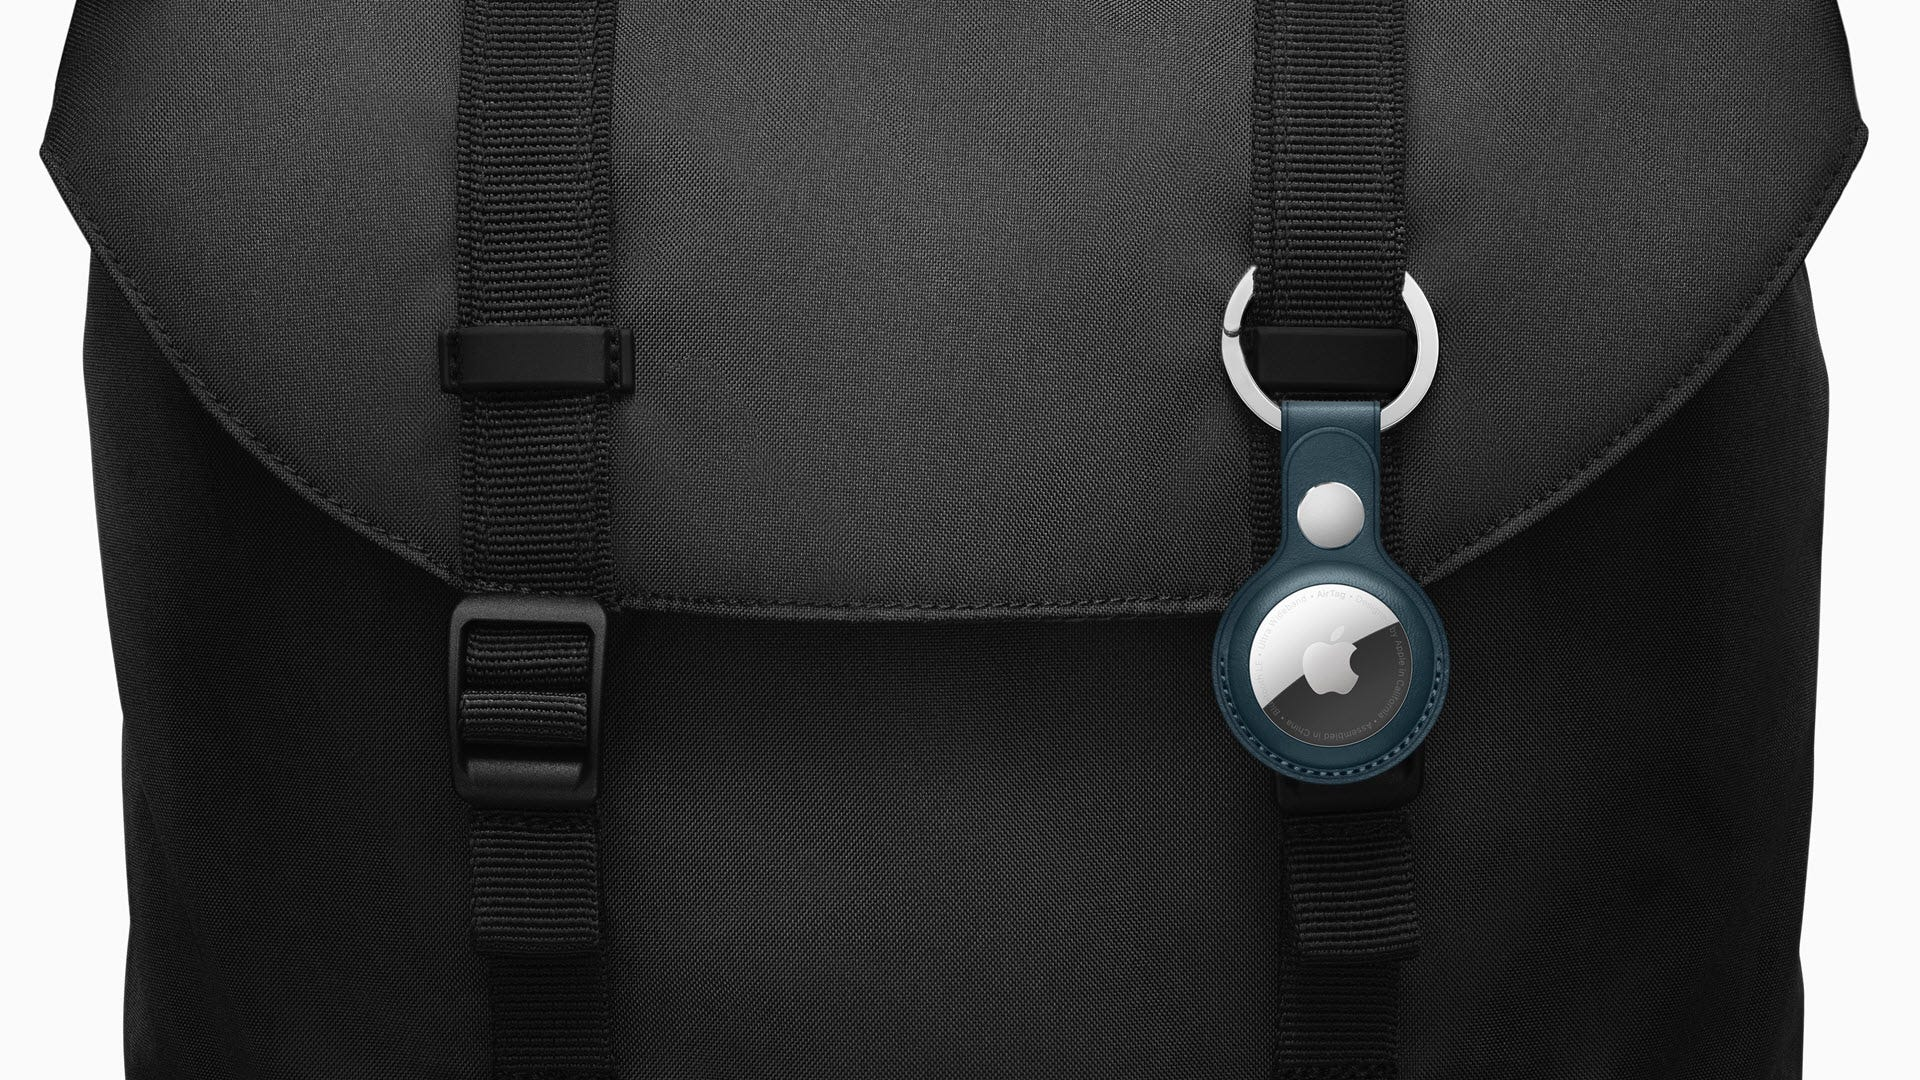 An AirTag attached to a backpack.